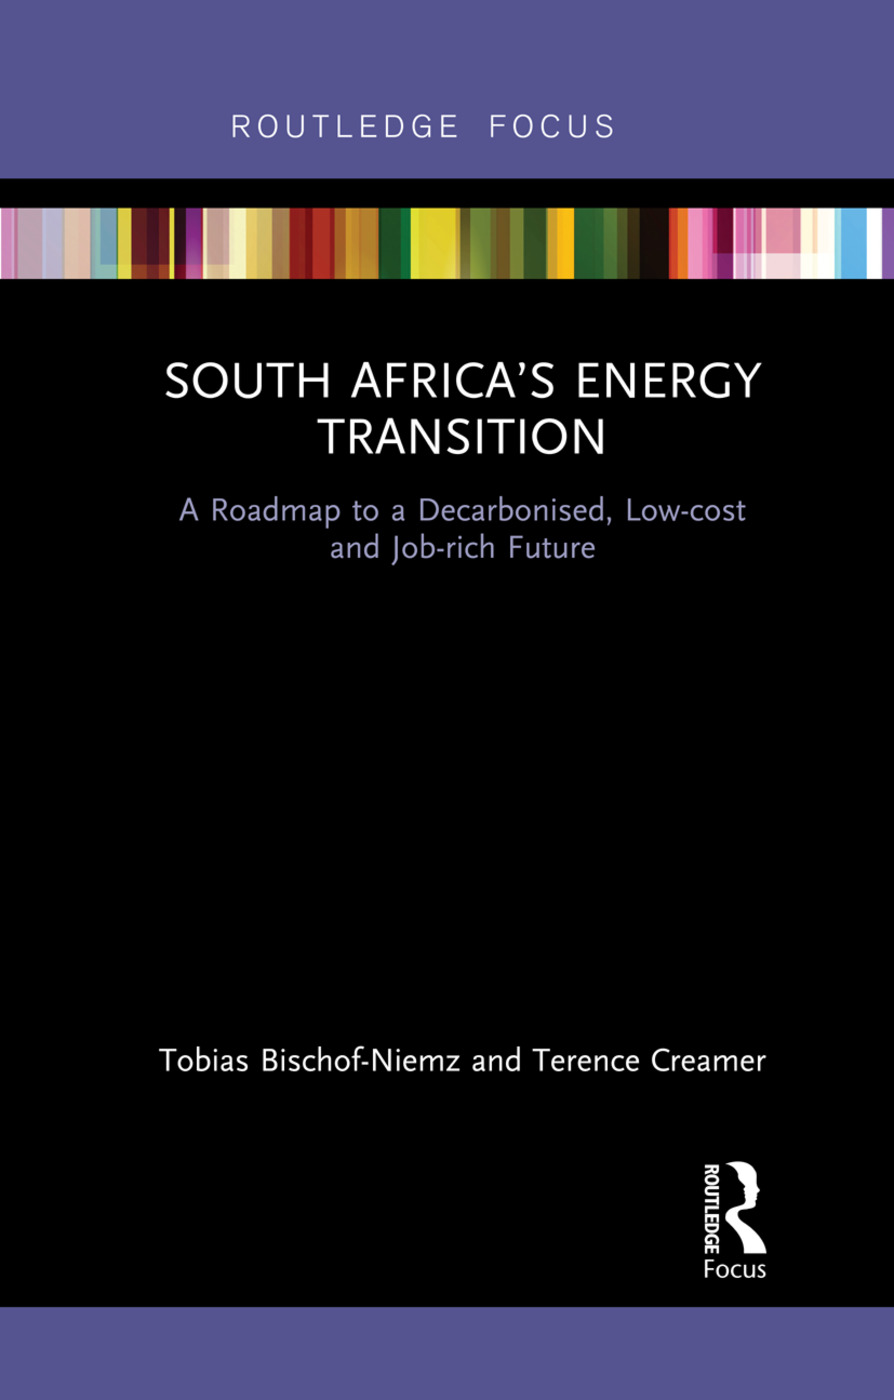 South Africa's Energy Transition: A Roadmap to a Decarbonised, Low-cost and Job-rich Future book cover